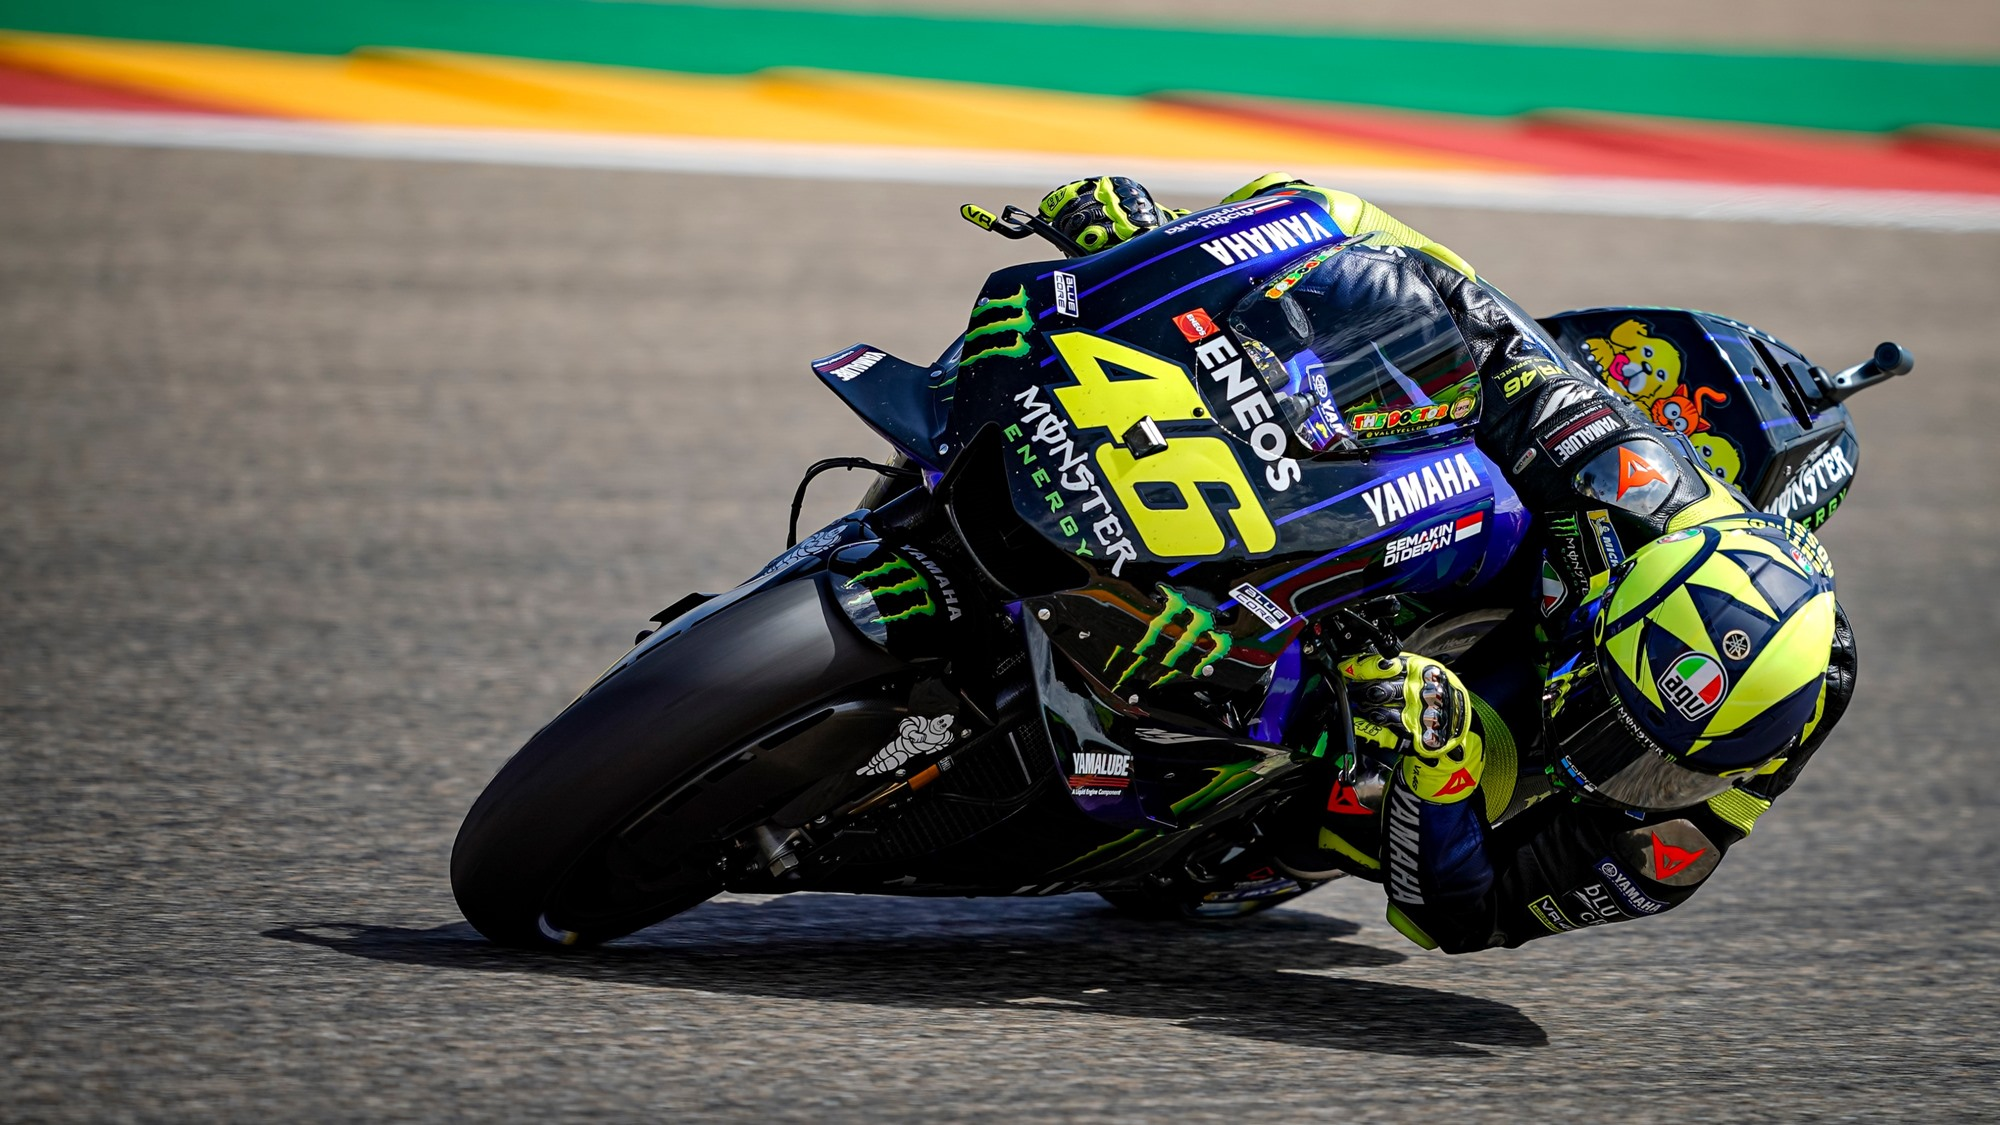 Valentino Rossi Aragon 2019 Motogp Hd Wallpaper Iamabiker Everything Motorcycle